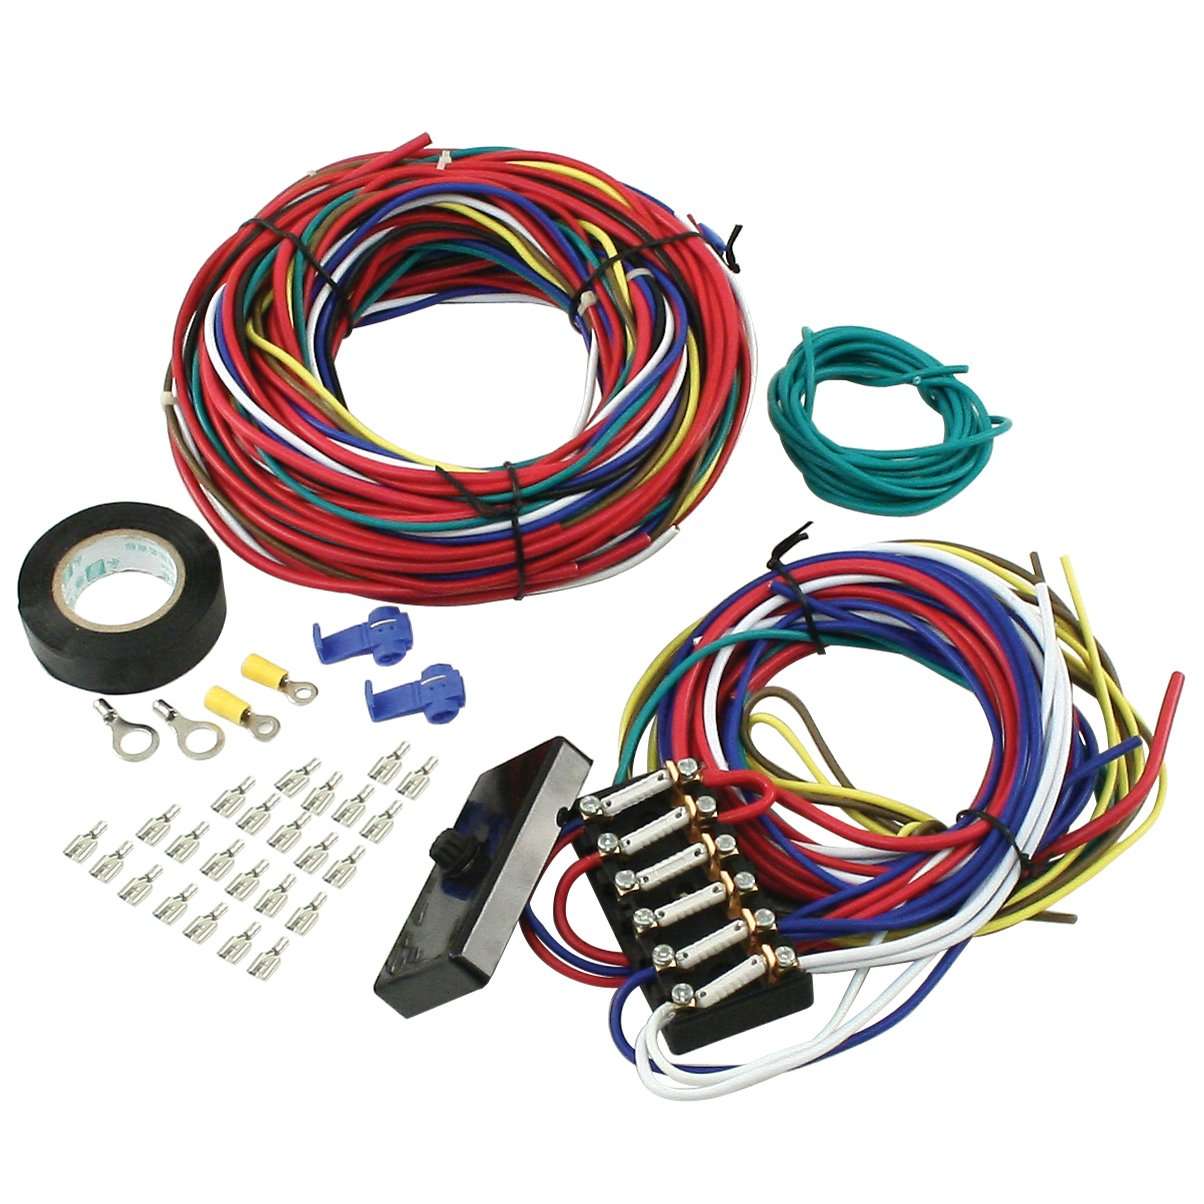 712Fyt3MSiL._SL1204_ amazon com empi 00 9466 0 wire loom kit, vw buggy, sand rail VW Wiring Harness Kits at metegol.co